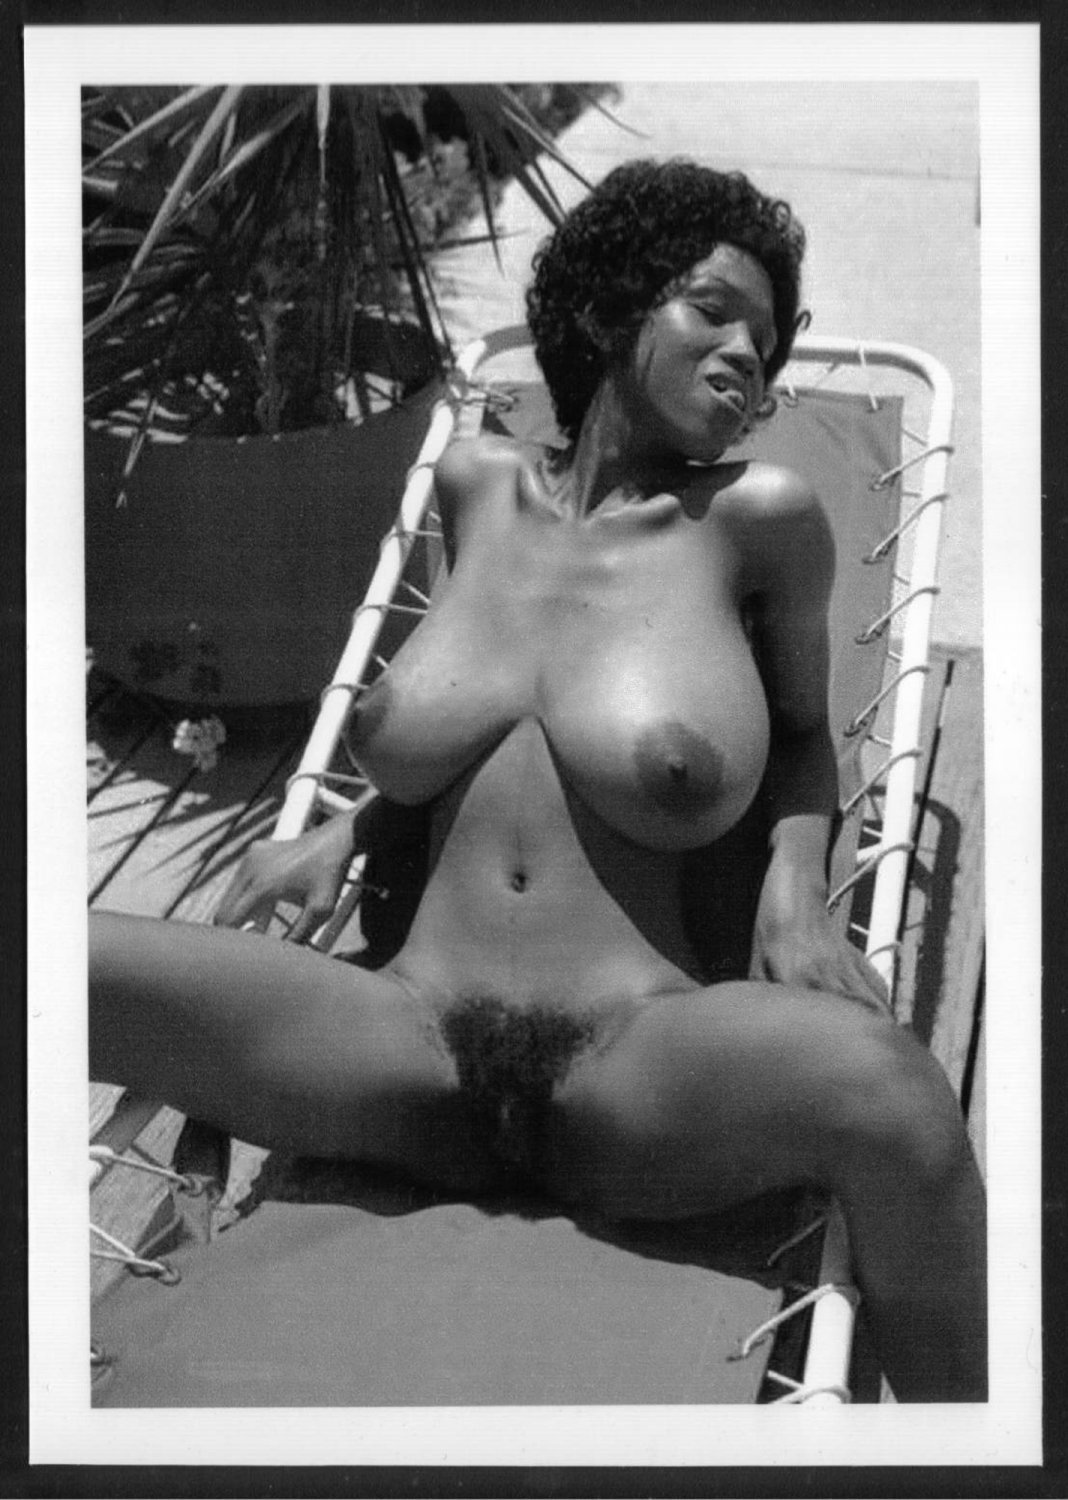 EBONY SYLVIA MCFARLAND TOPLESS NUDE HUGE BREASTS HAIRY PUSSY NEW REPRINT 5X7 SM-118